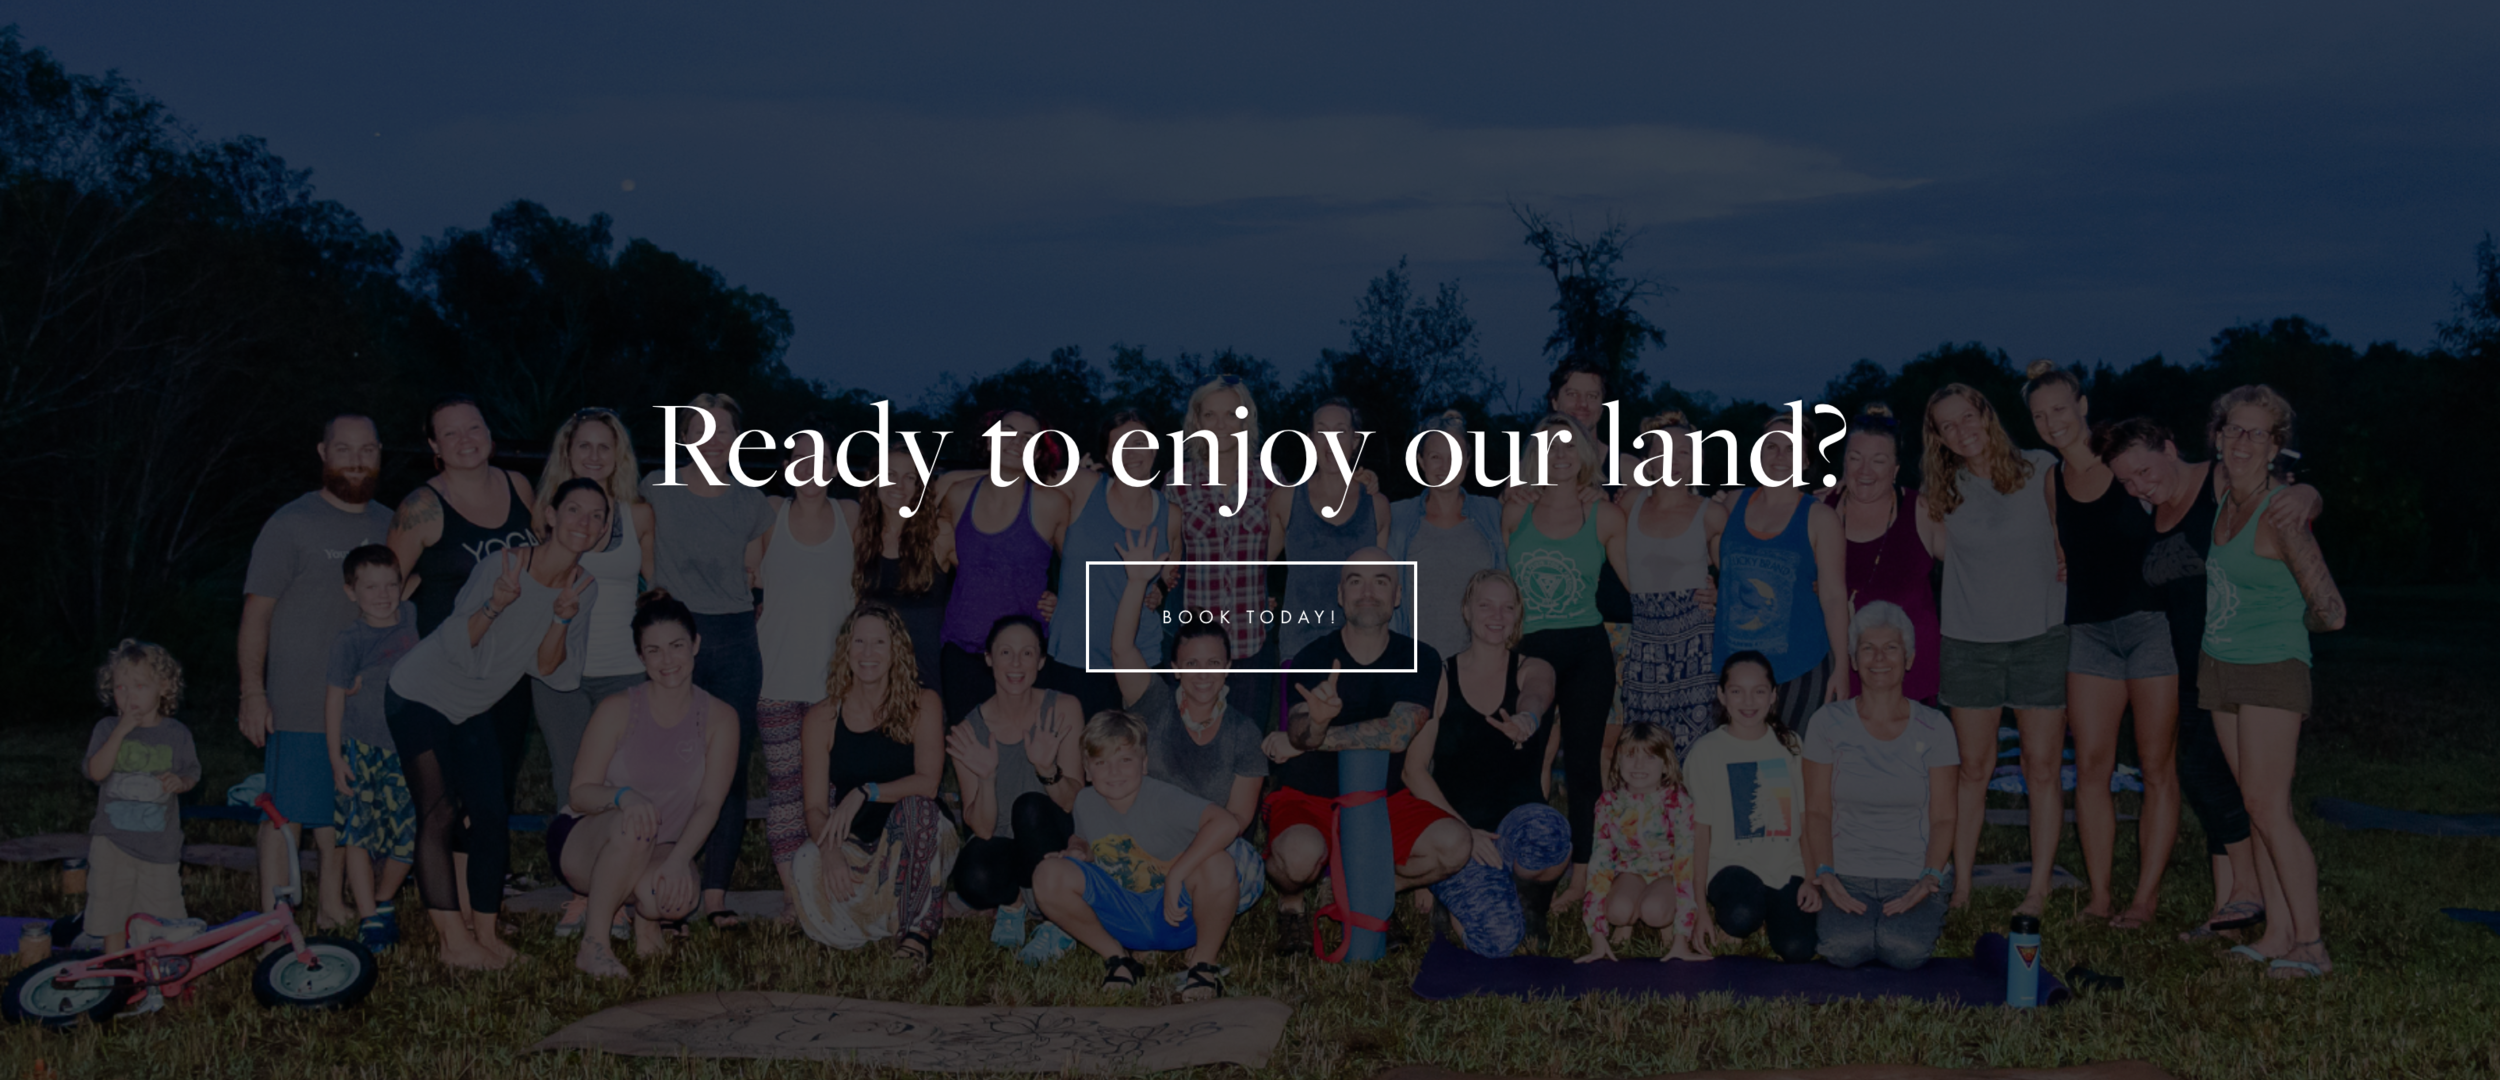 natural-gathering-grounds-book-now-banner.png